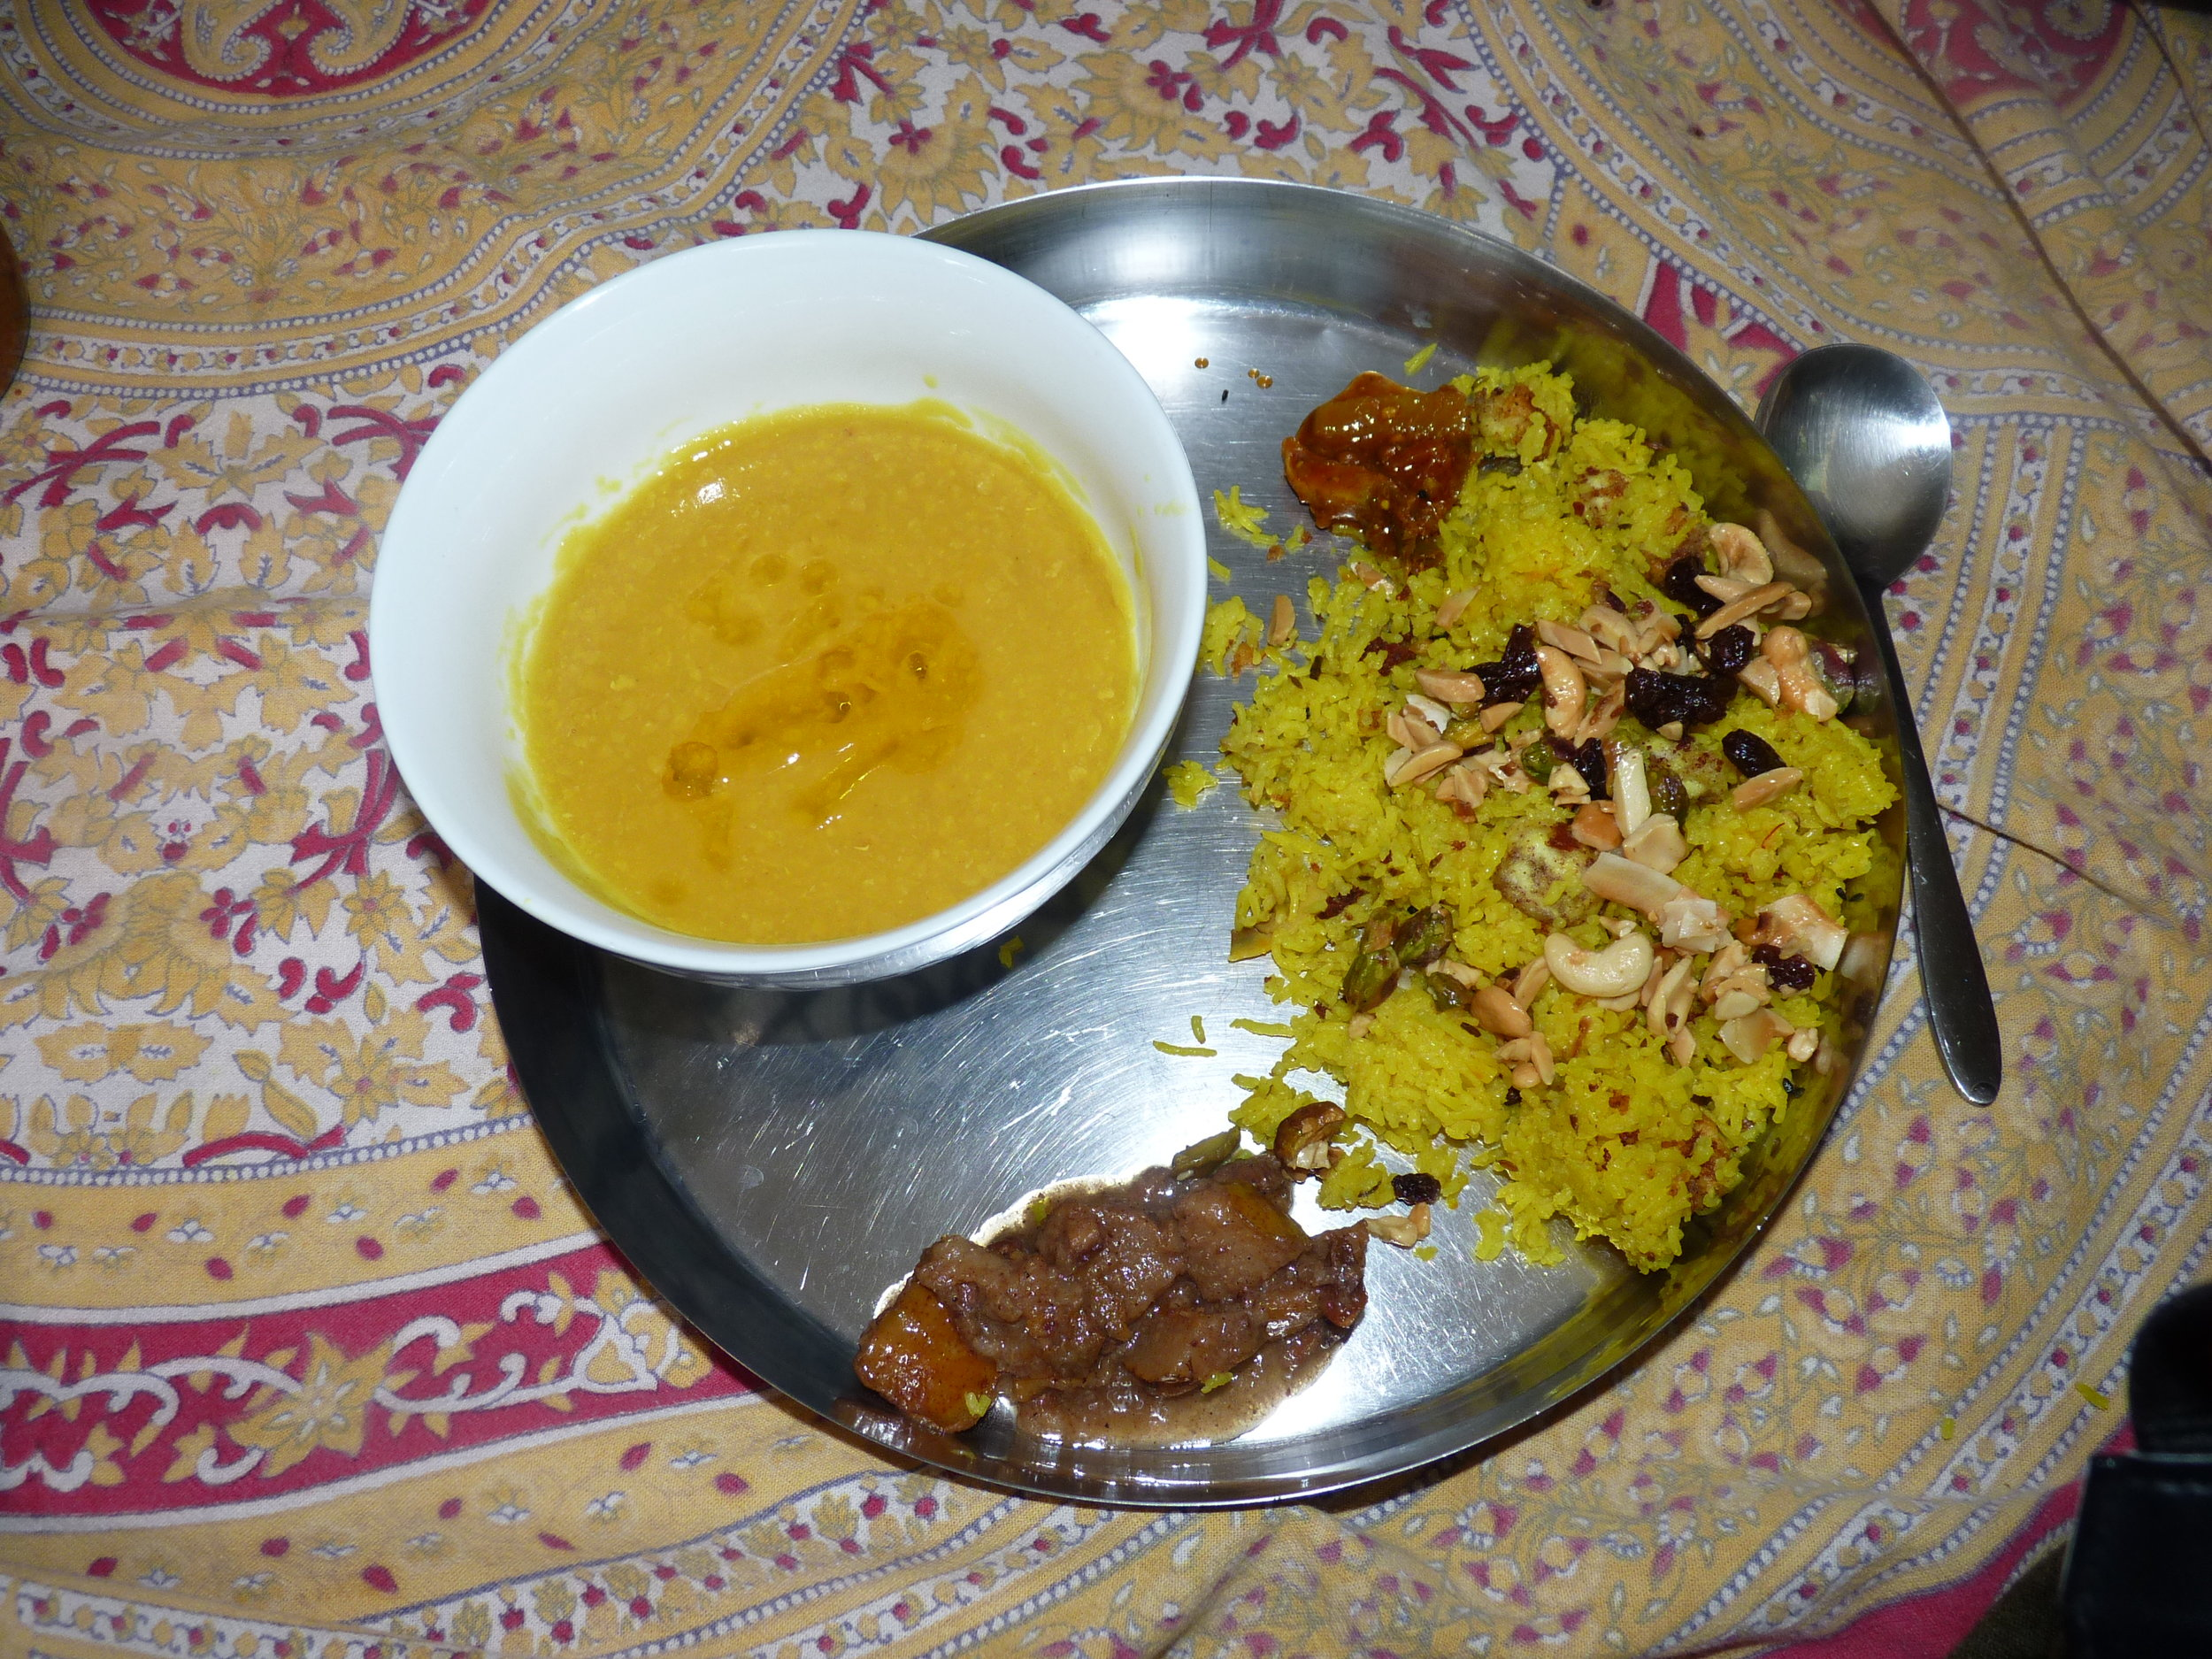 A traditional Ayurvedic meal featuring Royal Rice